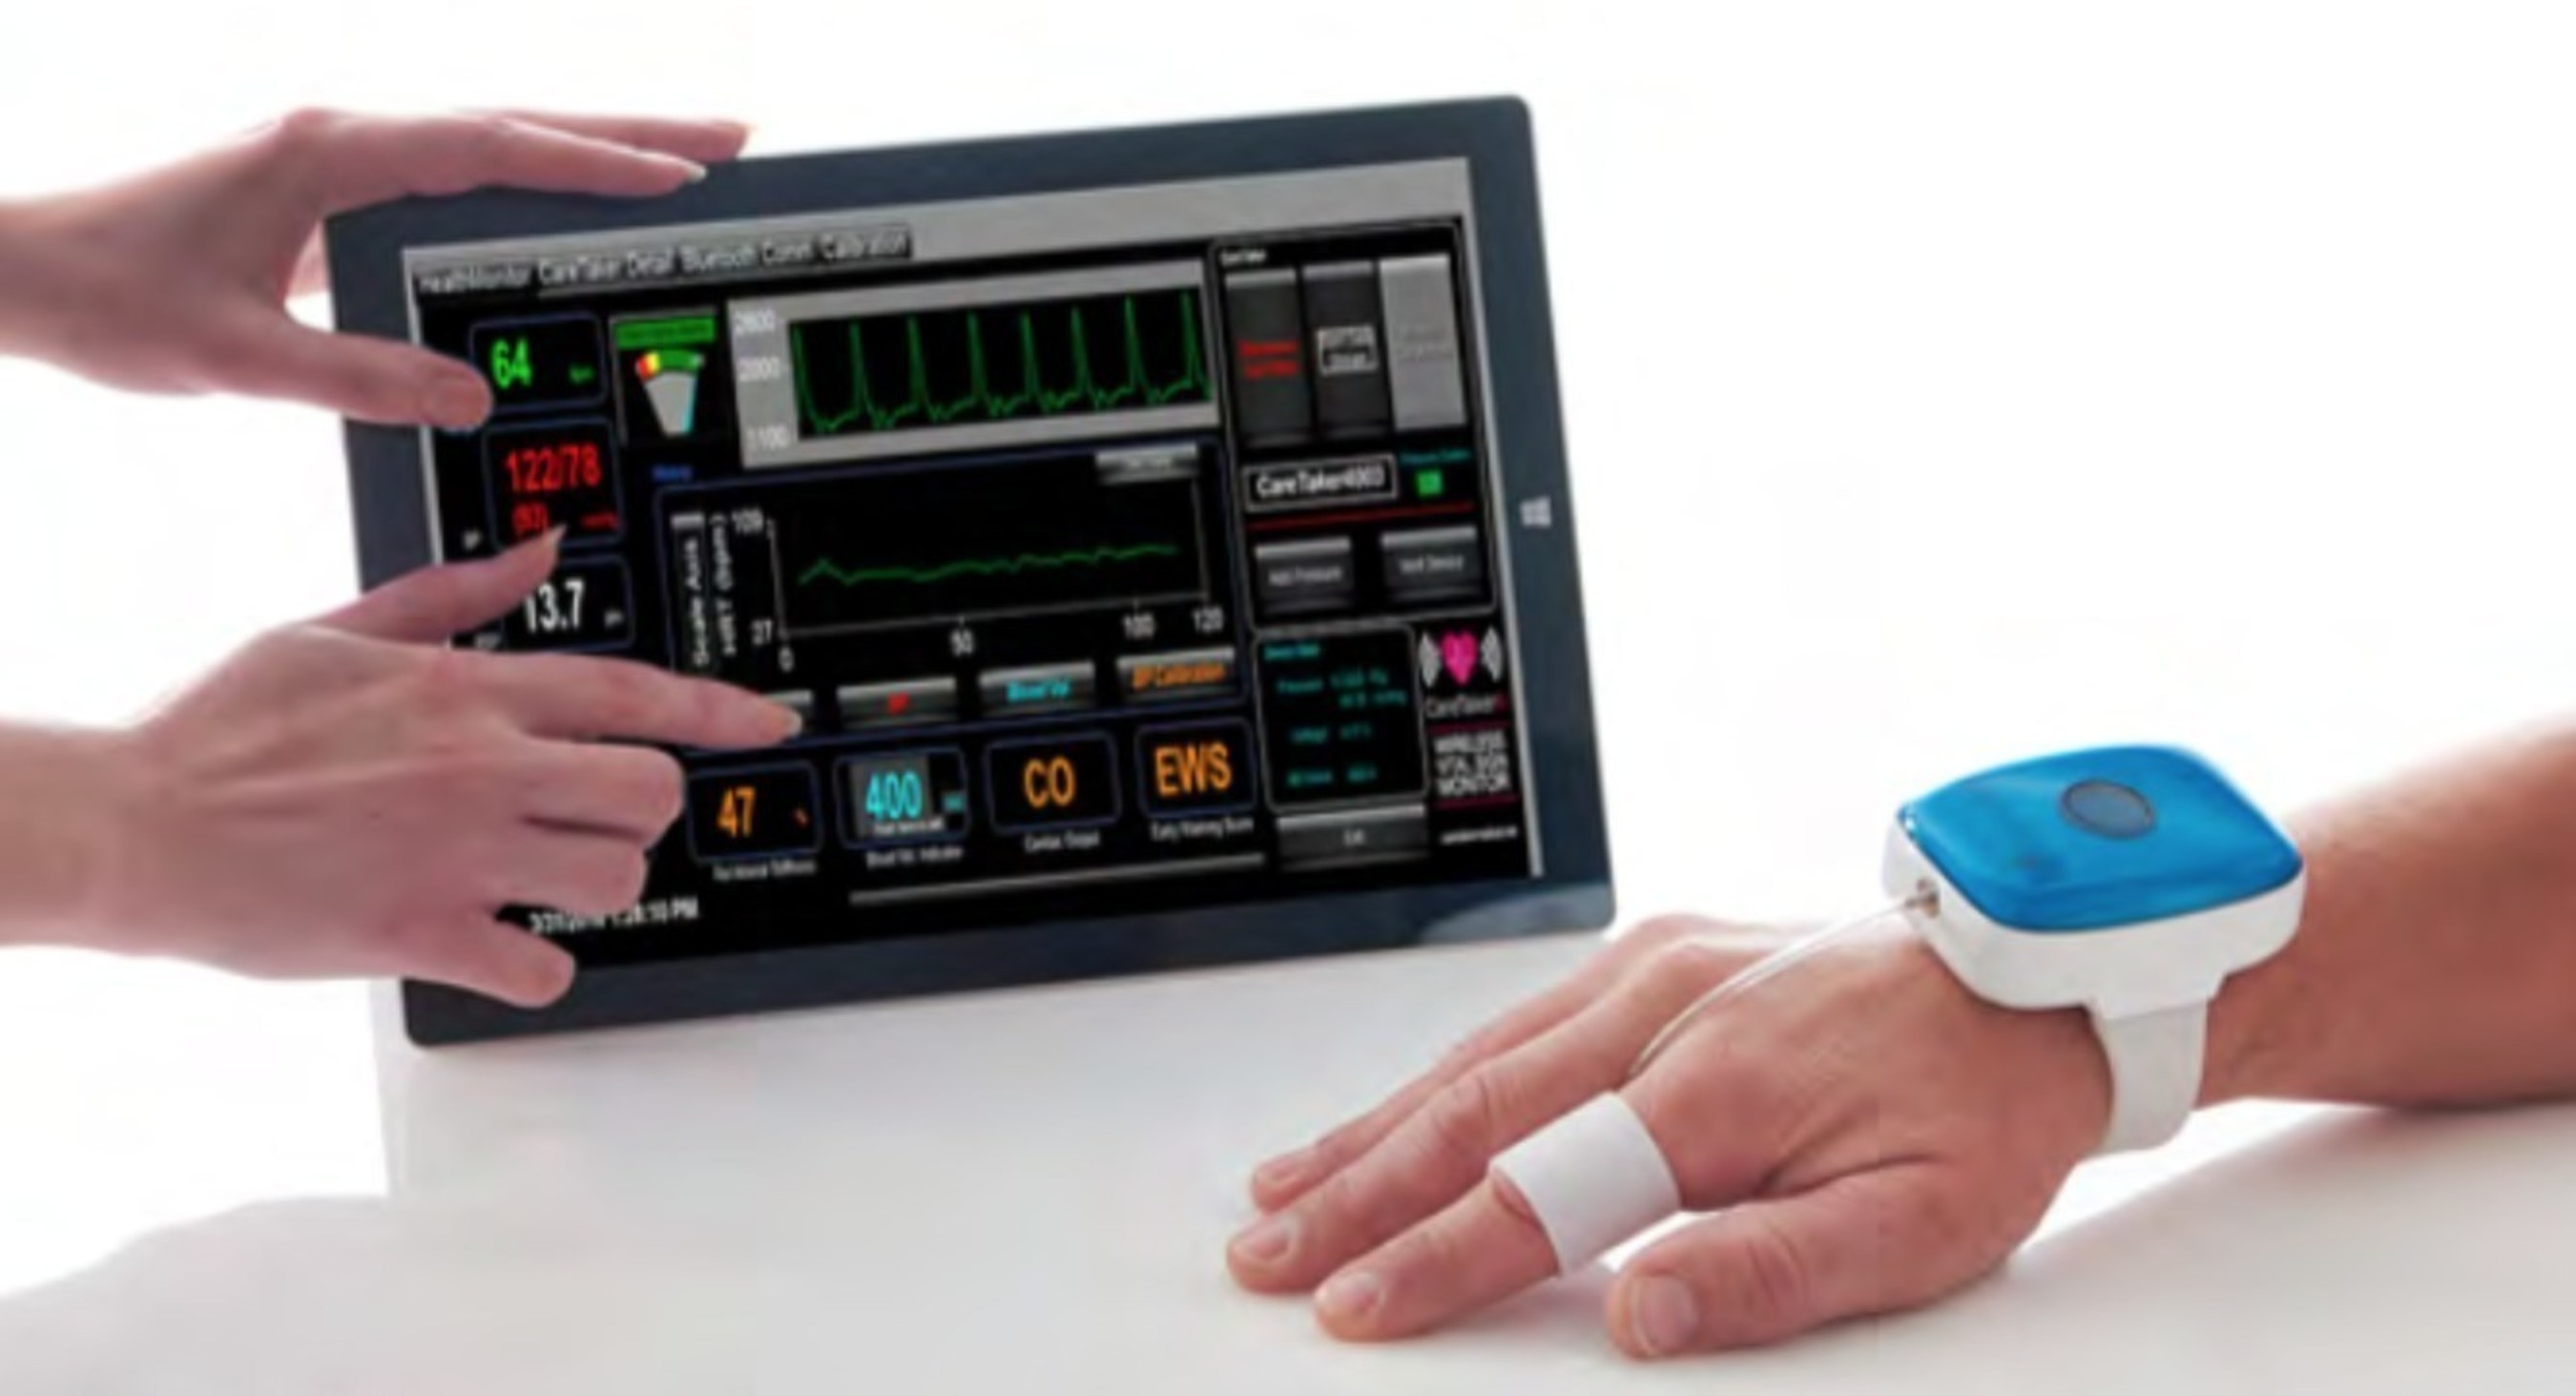 CareTaker Wireless Continuous Blood Pressure and Heart Rate Monitor with Finger Cuff Technology